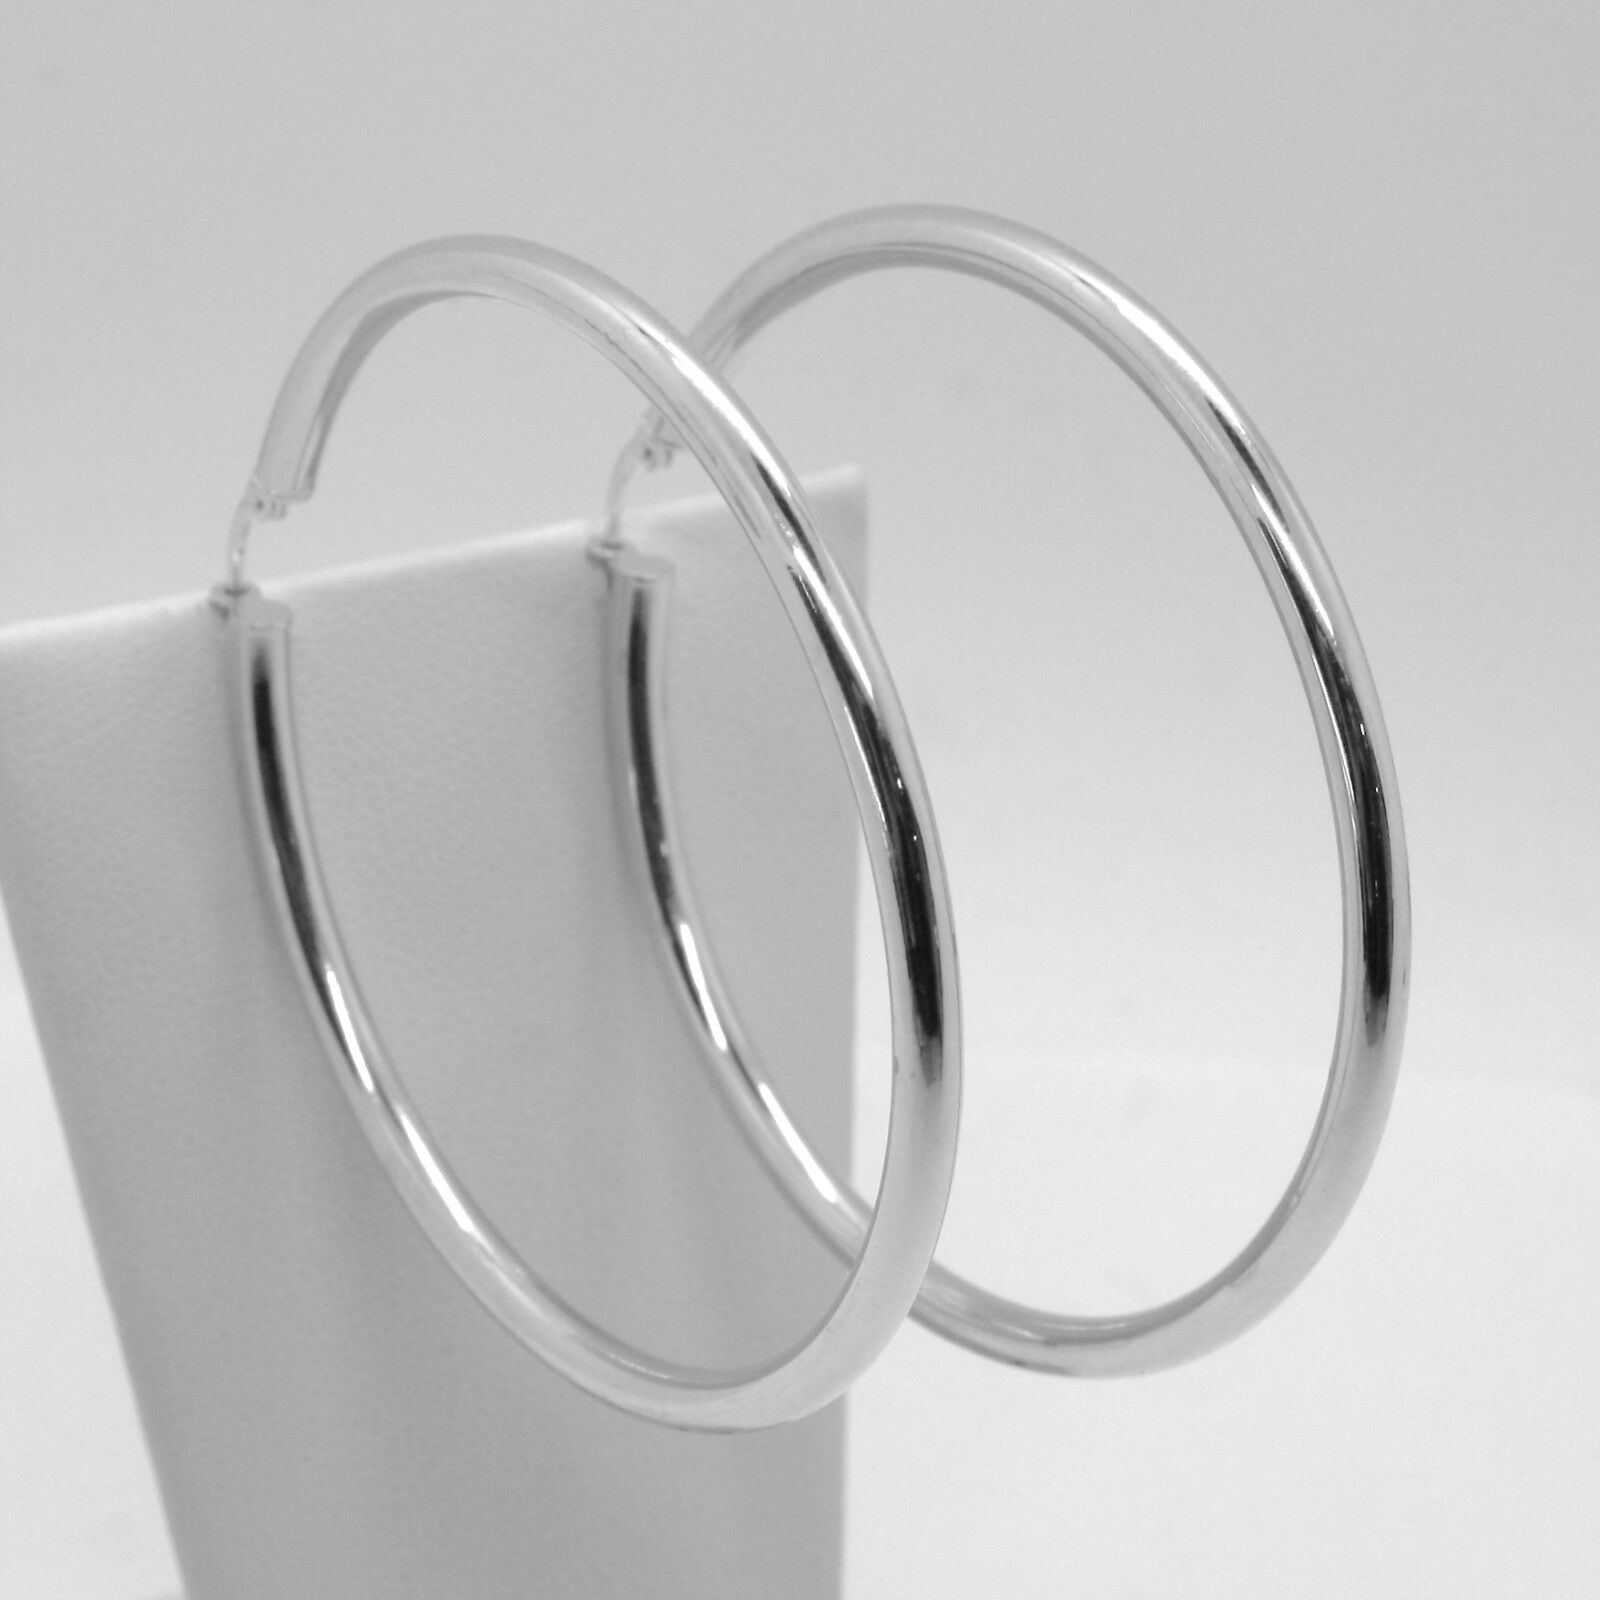 18K WHITE GOLD ROUND CIRCLE EARRINGS DIAMETER 50 MM, WIDTH 3 MM, MADE IN ITALY